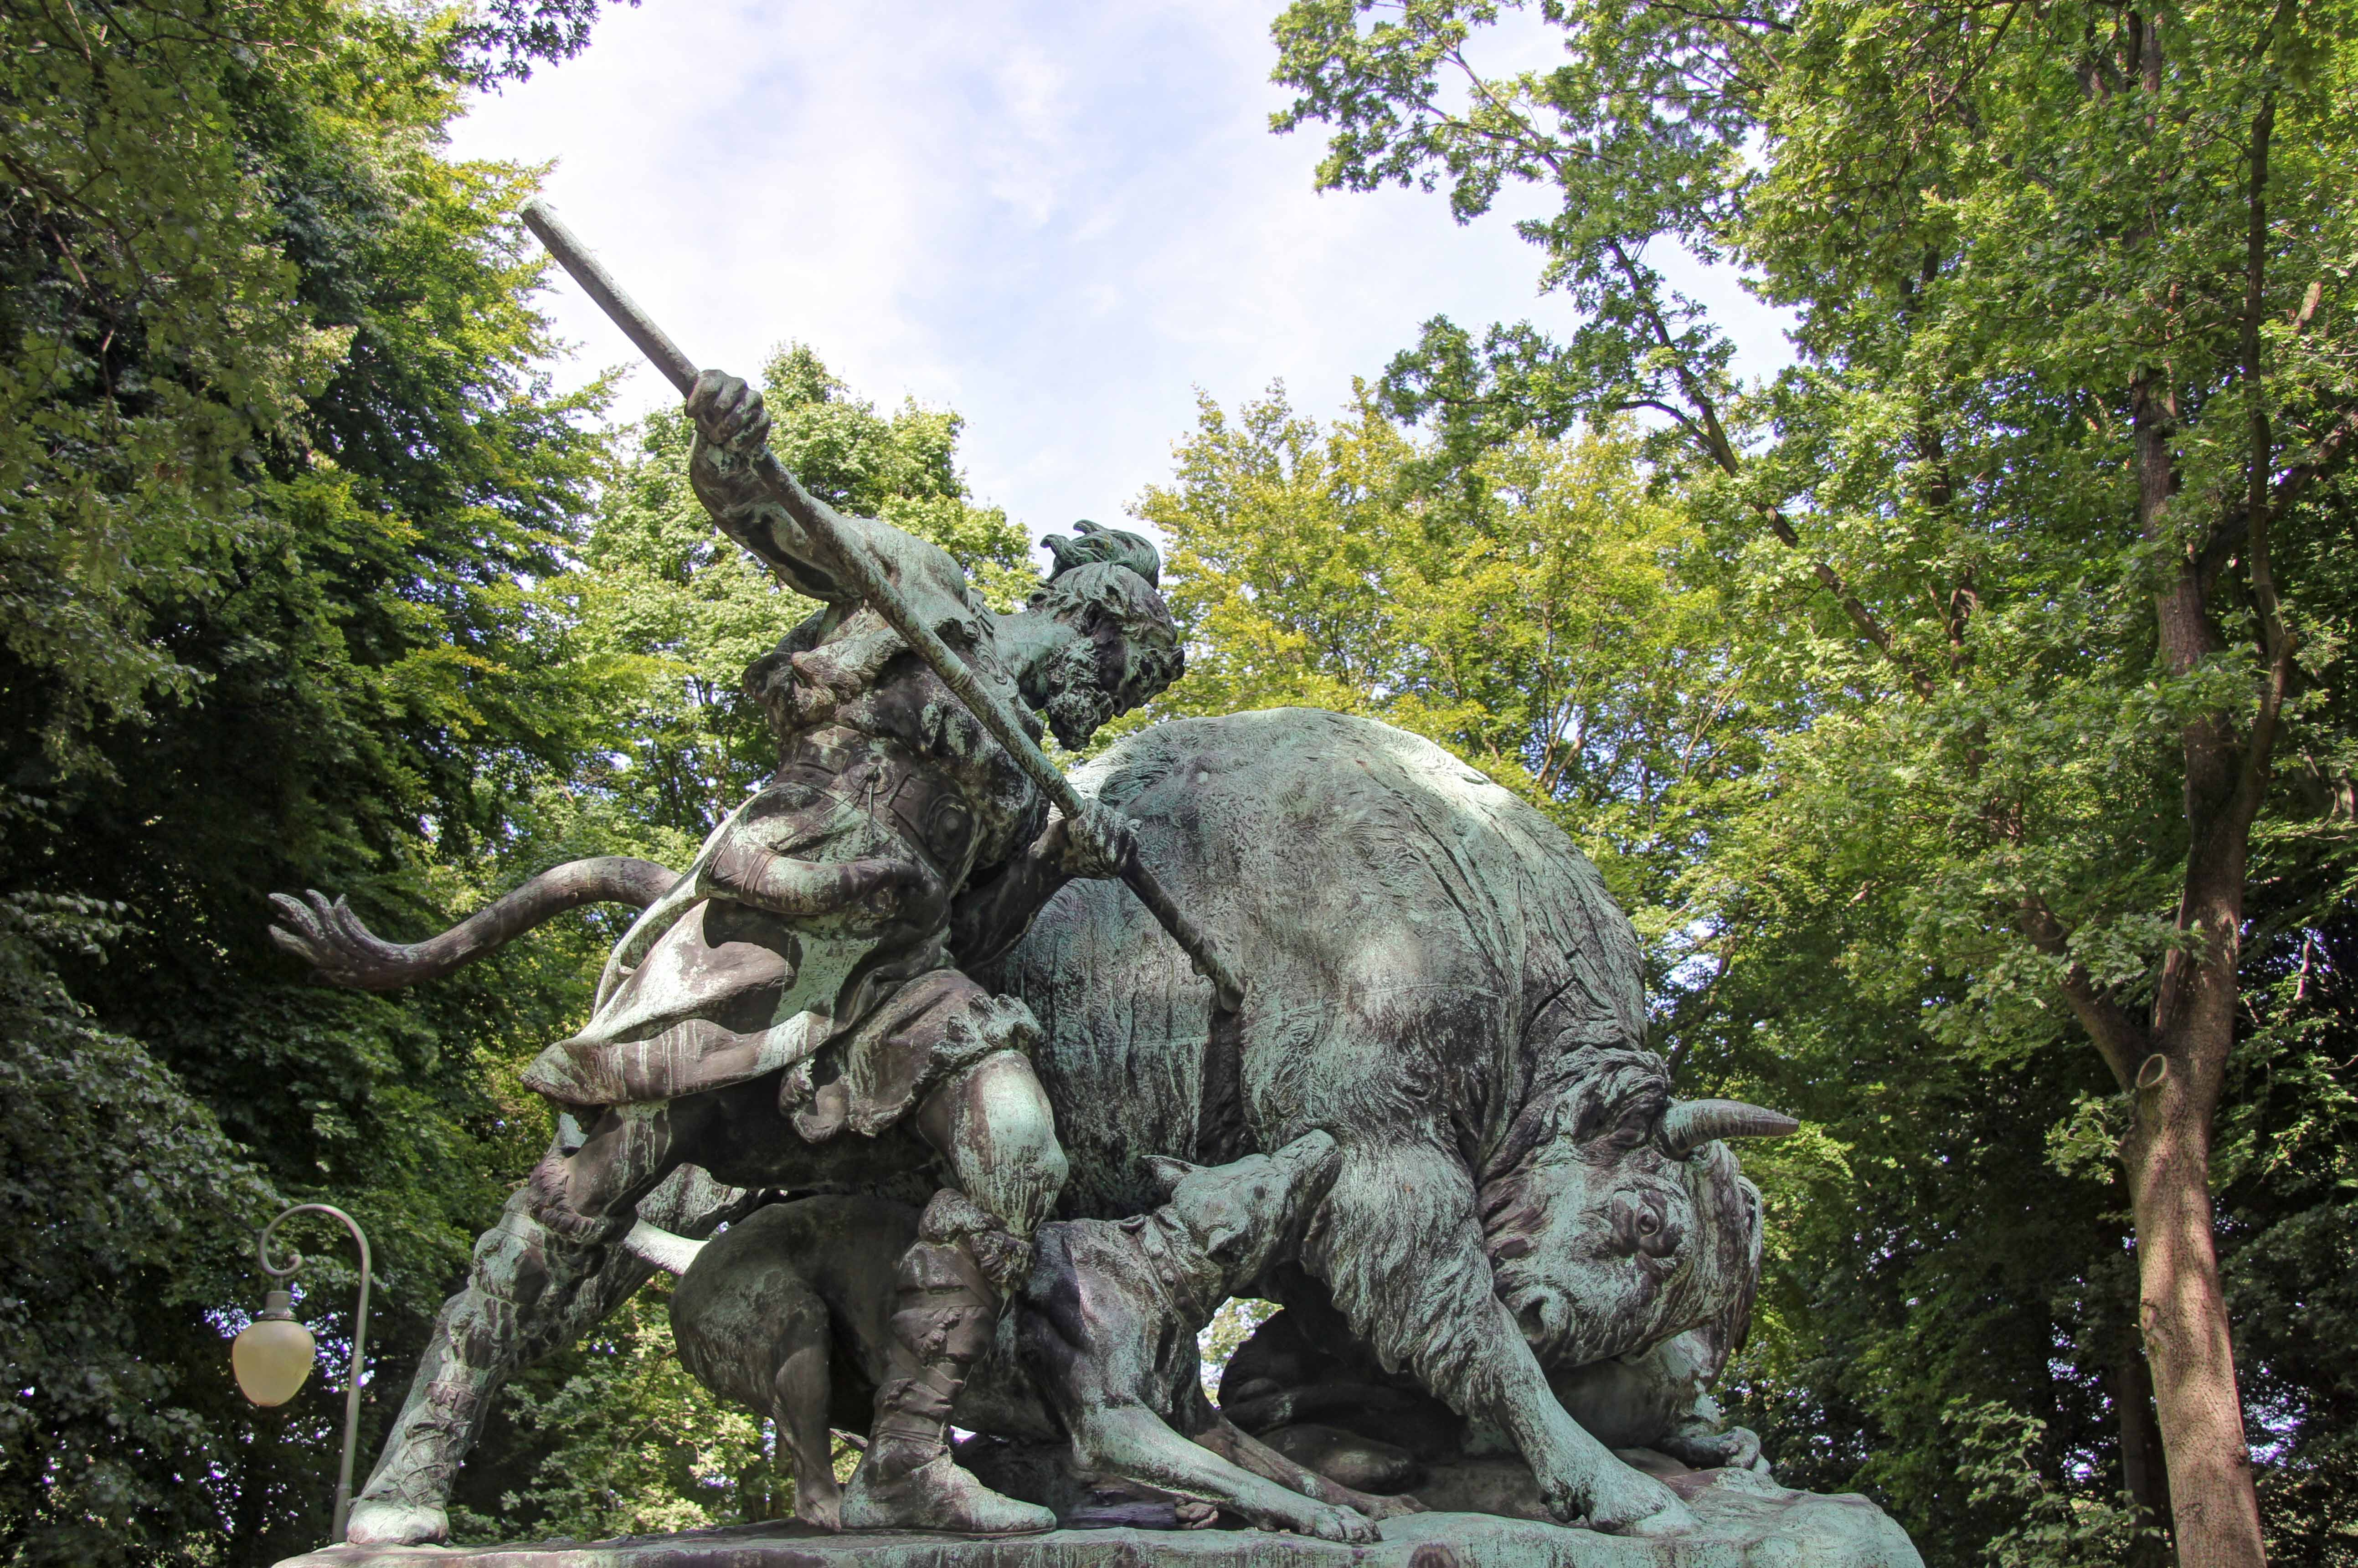 A hunting statue in the Tiergarten in Berlin